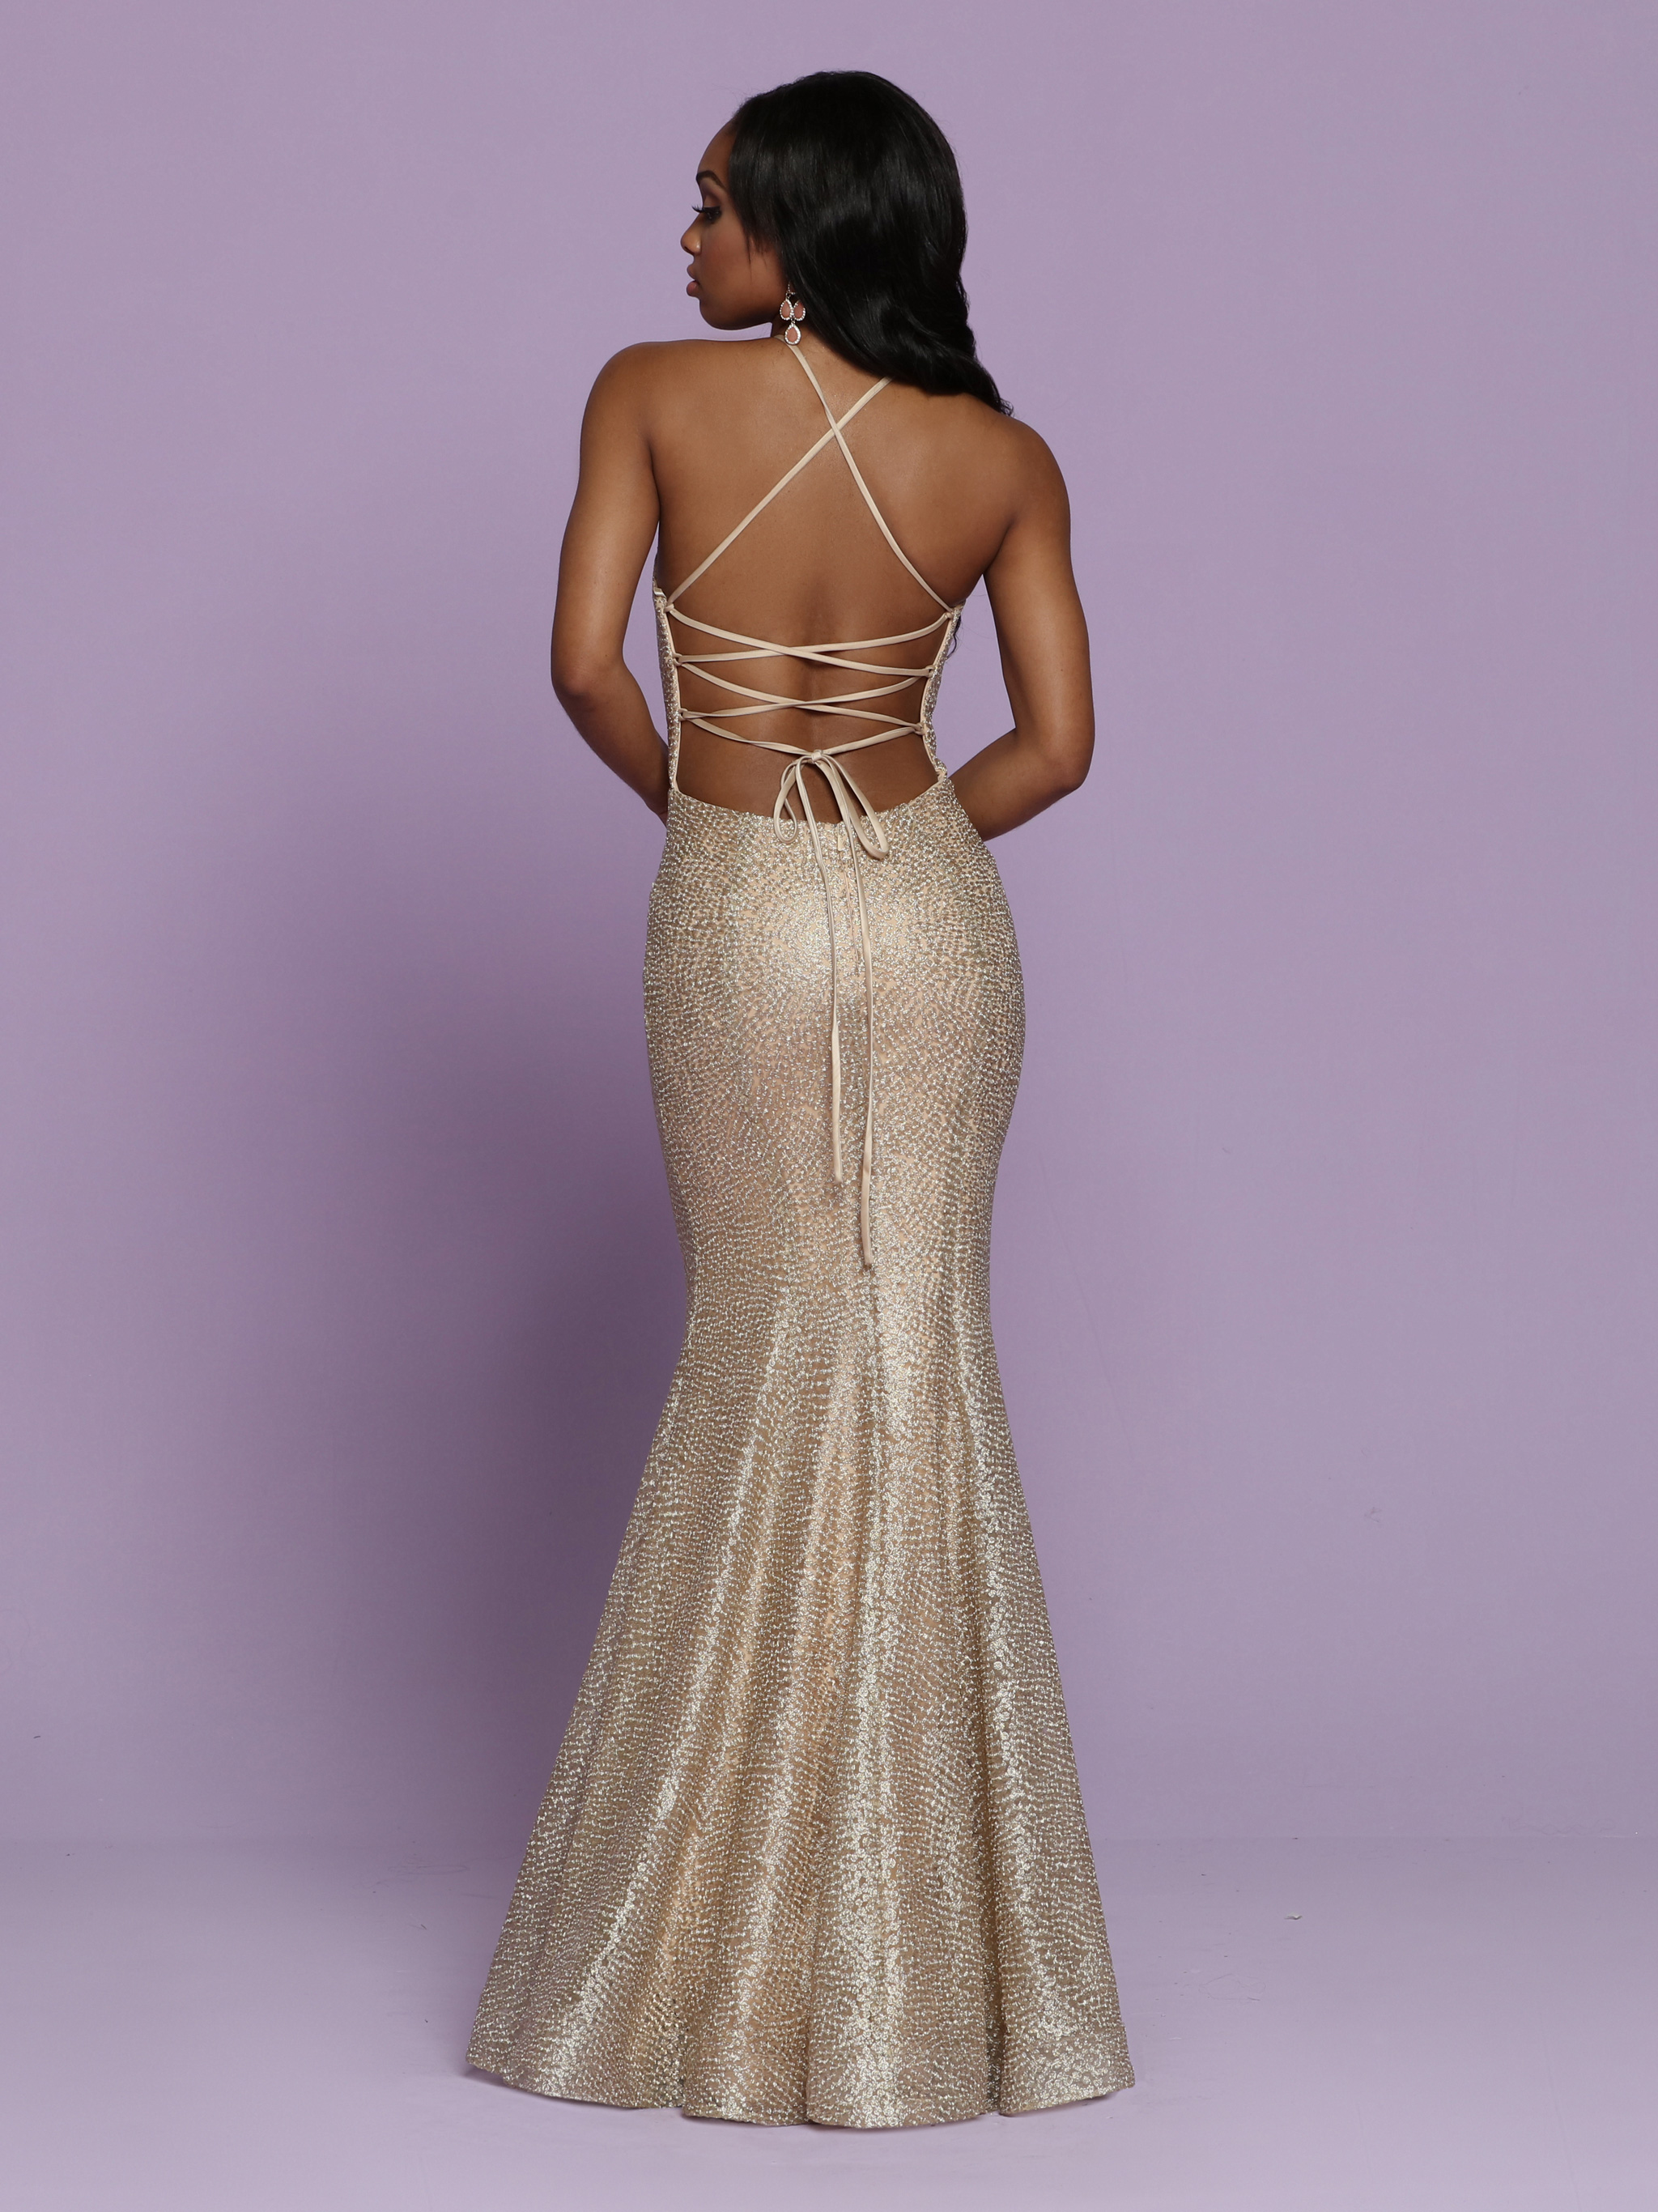 Image showing back view of style #72088